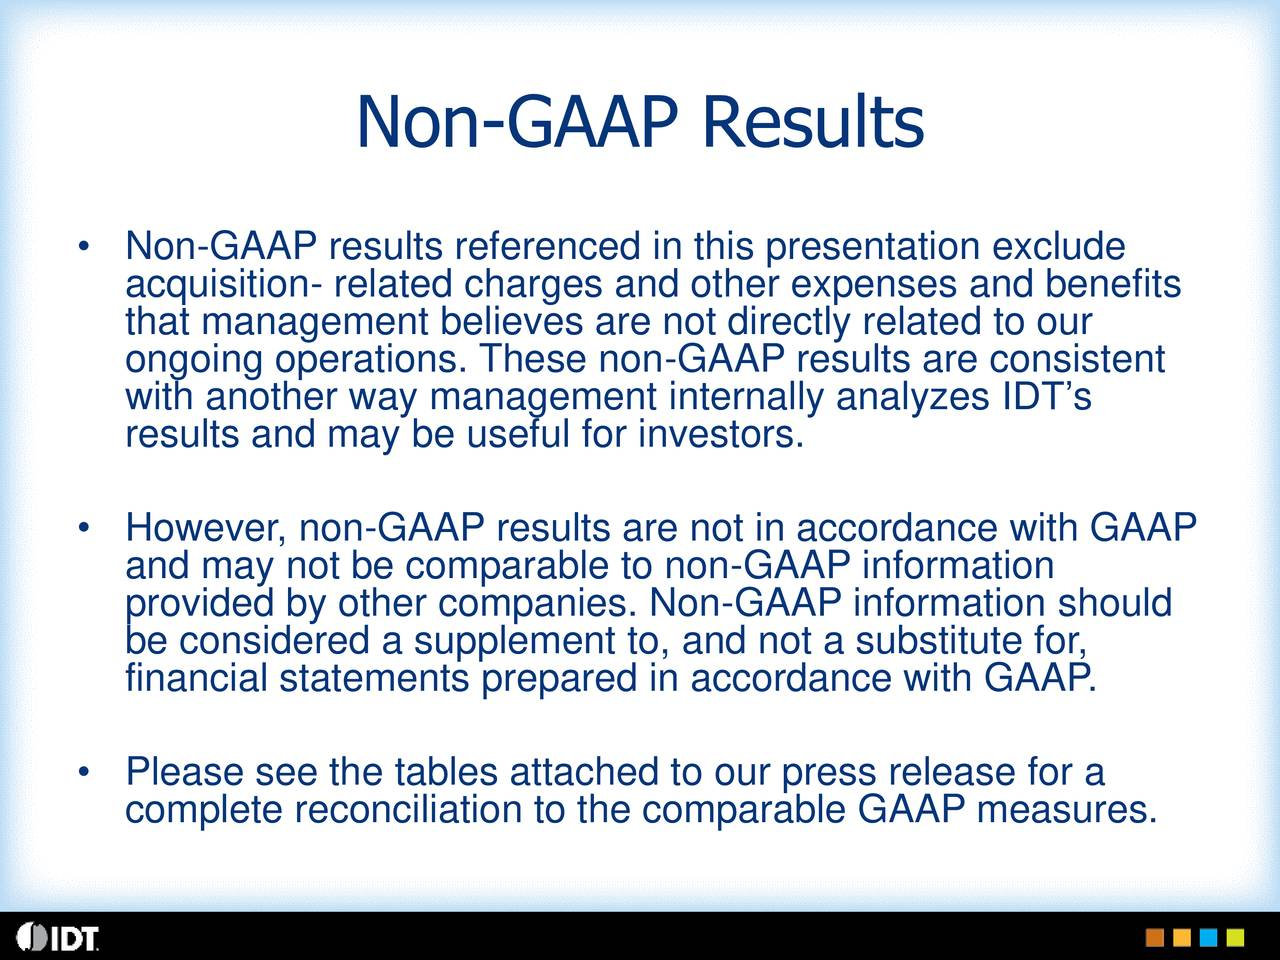 Non-GAAP results referenced in this presentation exclude acquisition- related charges and other expenses and benefits that management believes are not directly related to our ongoing operations. These non-GAAP results are consistent with another way management internally analyzes IDTs results and may be useful for investors. Hand may not be comparable to non-GAAP informationth GAAP provided by other companies. Non-GAAP information should be considered a supplement to, and not a substitute for, financial statements prepared in accordance with GAAP. Please see the tables attached to our press release for a complete reconciliation to the comparable GAAP measures.